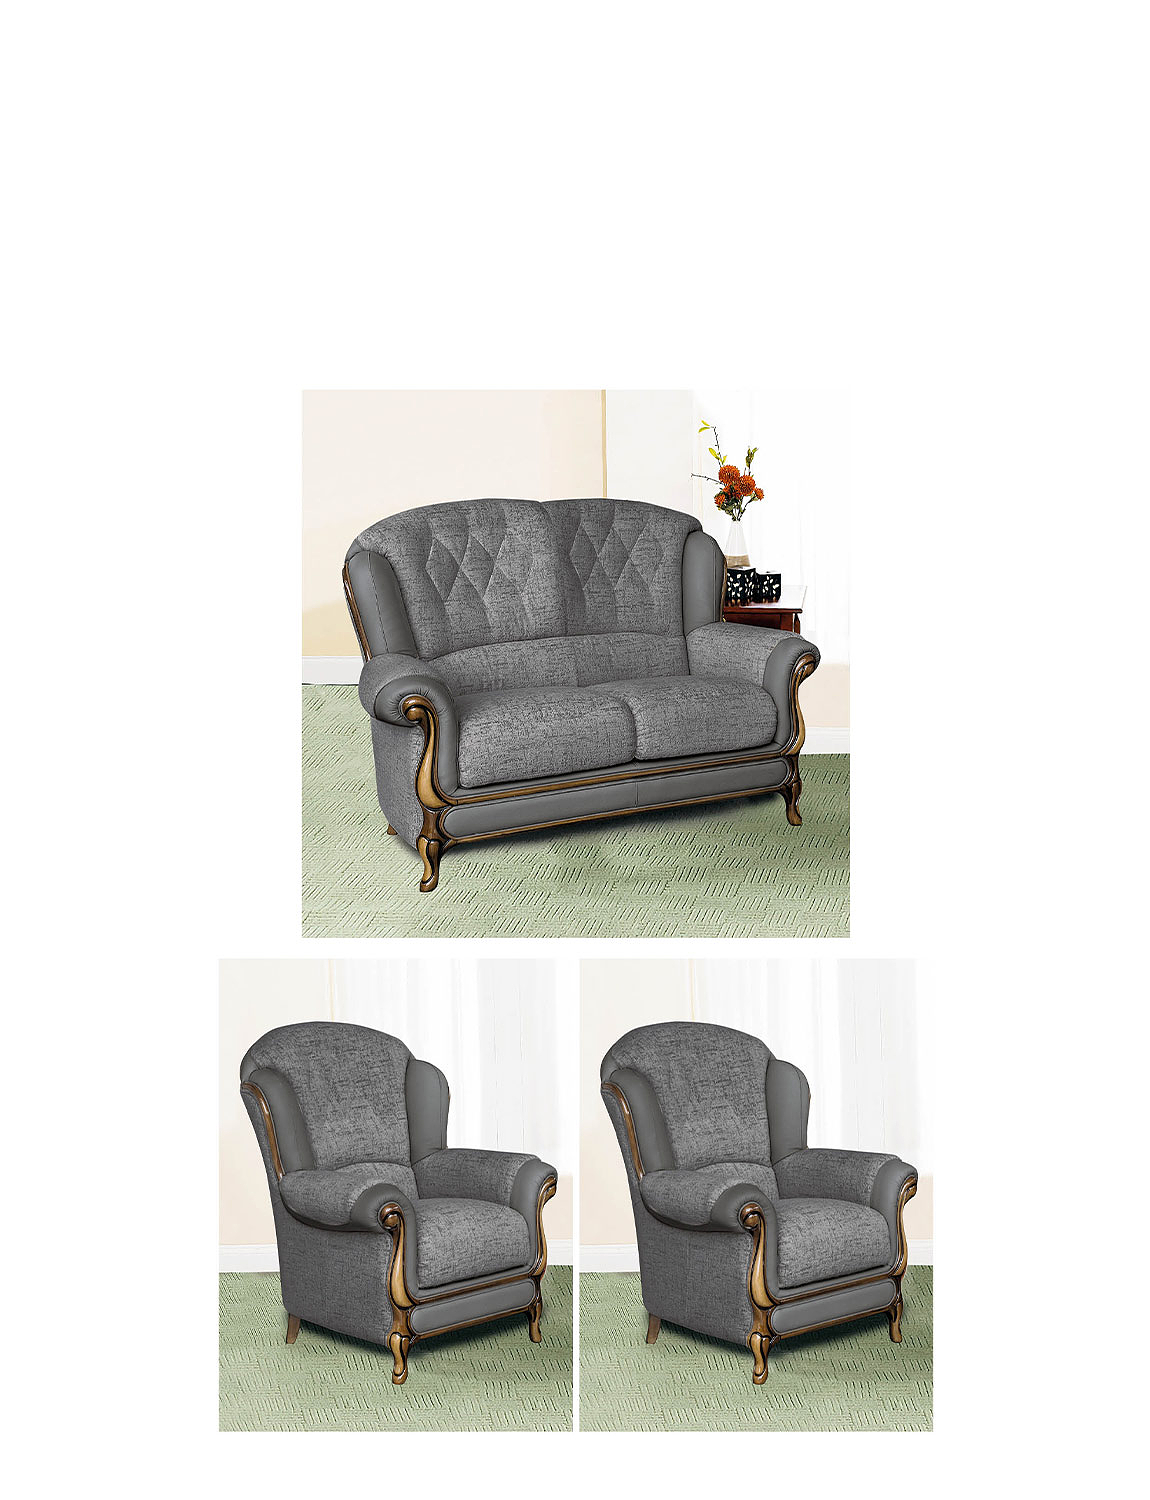 Queen Anne Suite - Two Seater Plus Two Chairs